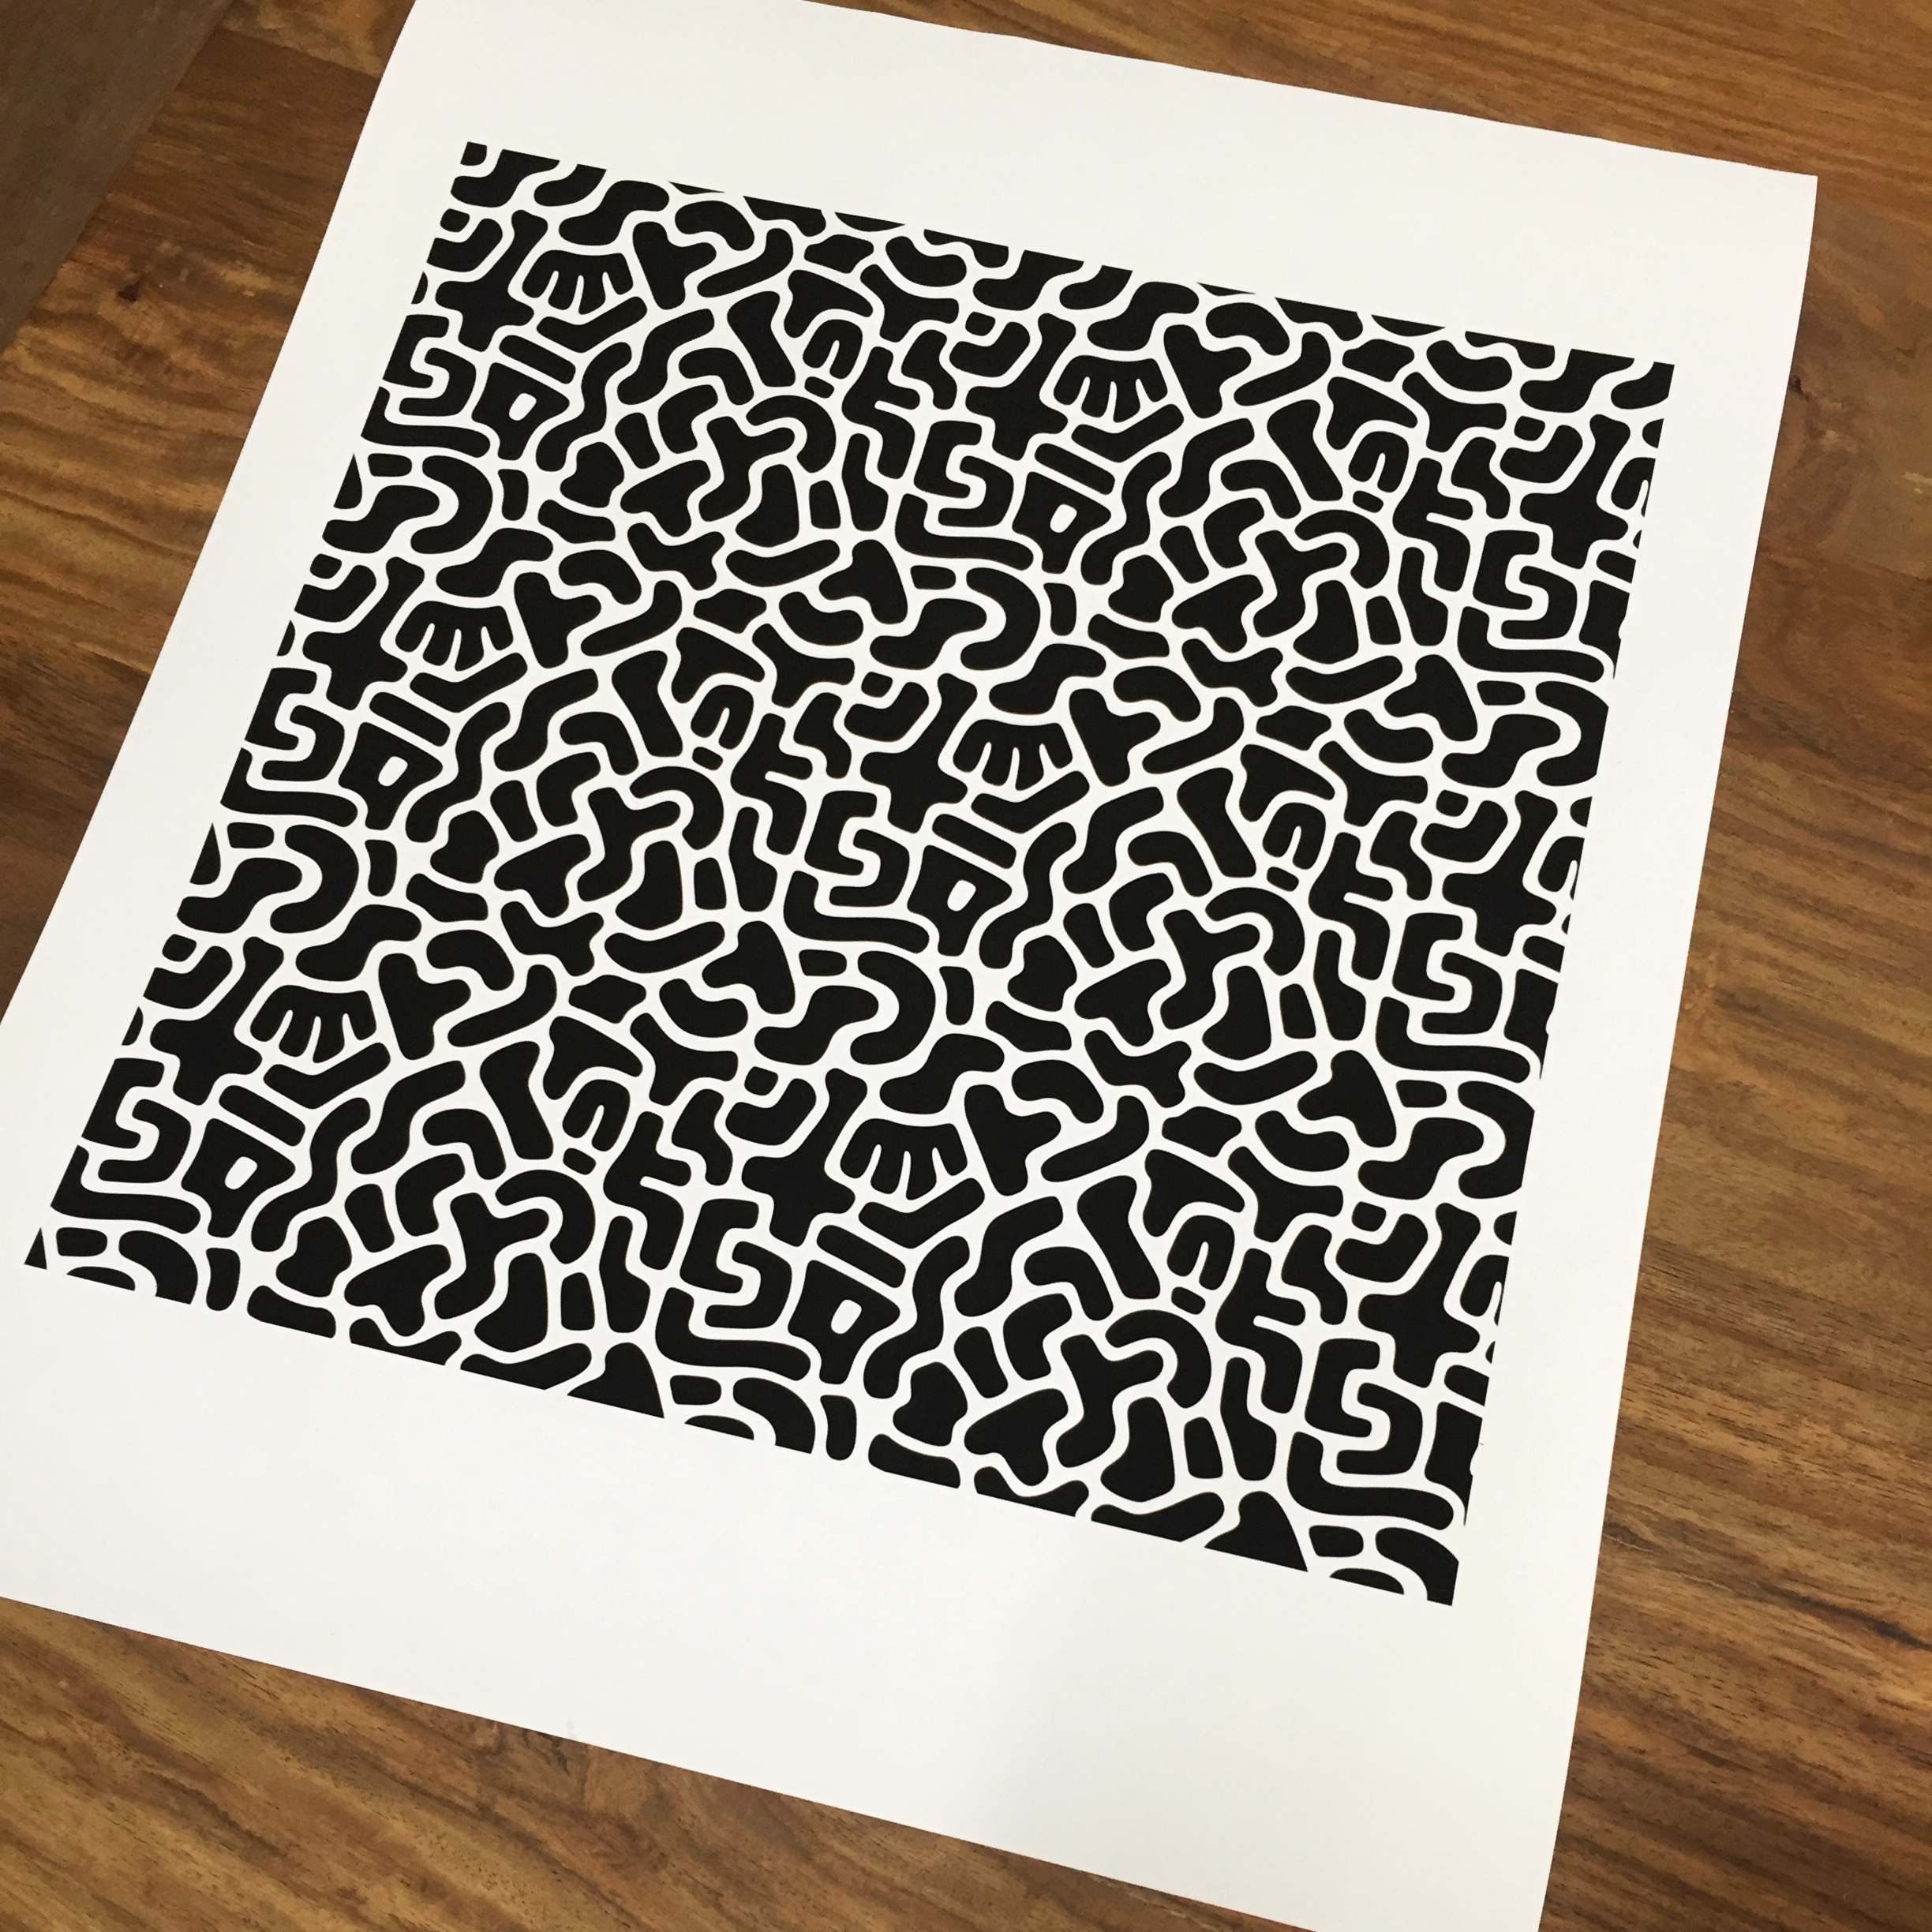 Abstract repeat pattern (print) by Cécile Parker